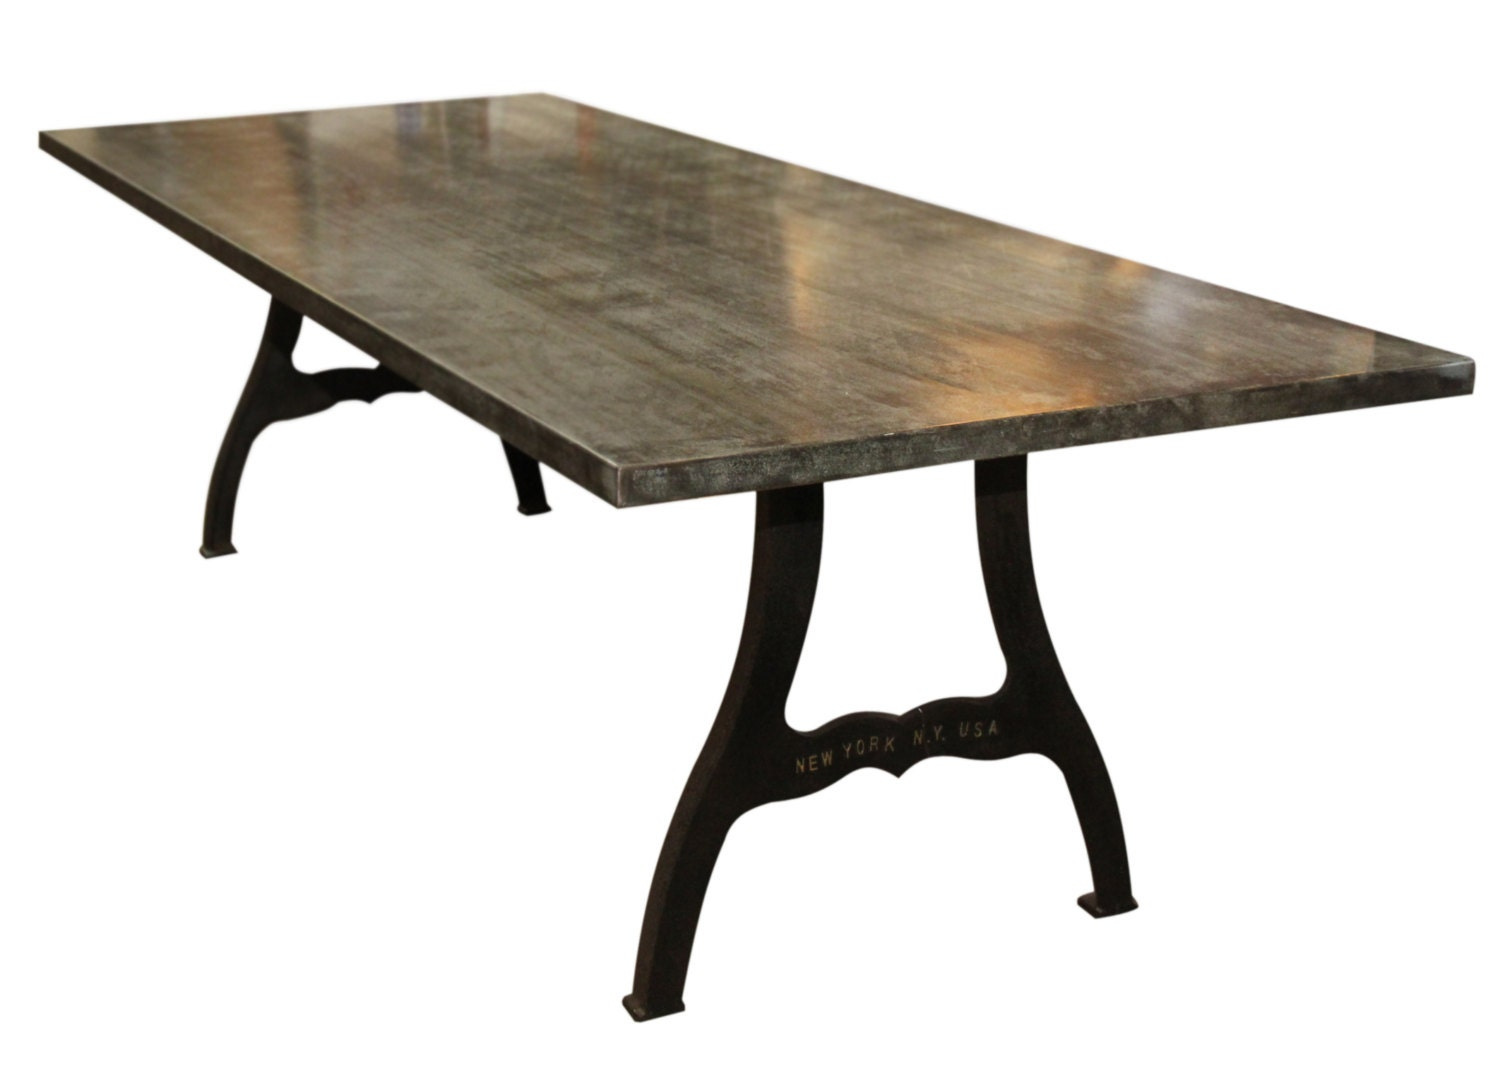 Galvanized steel table with new york industrial legs for Table new york